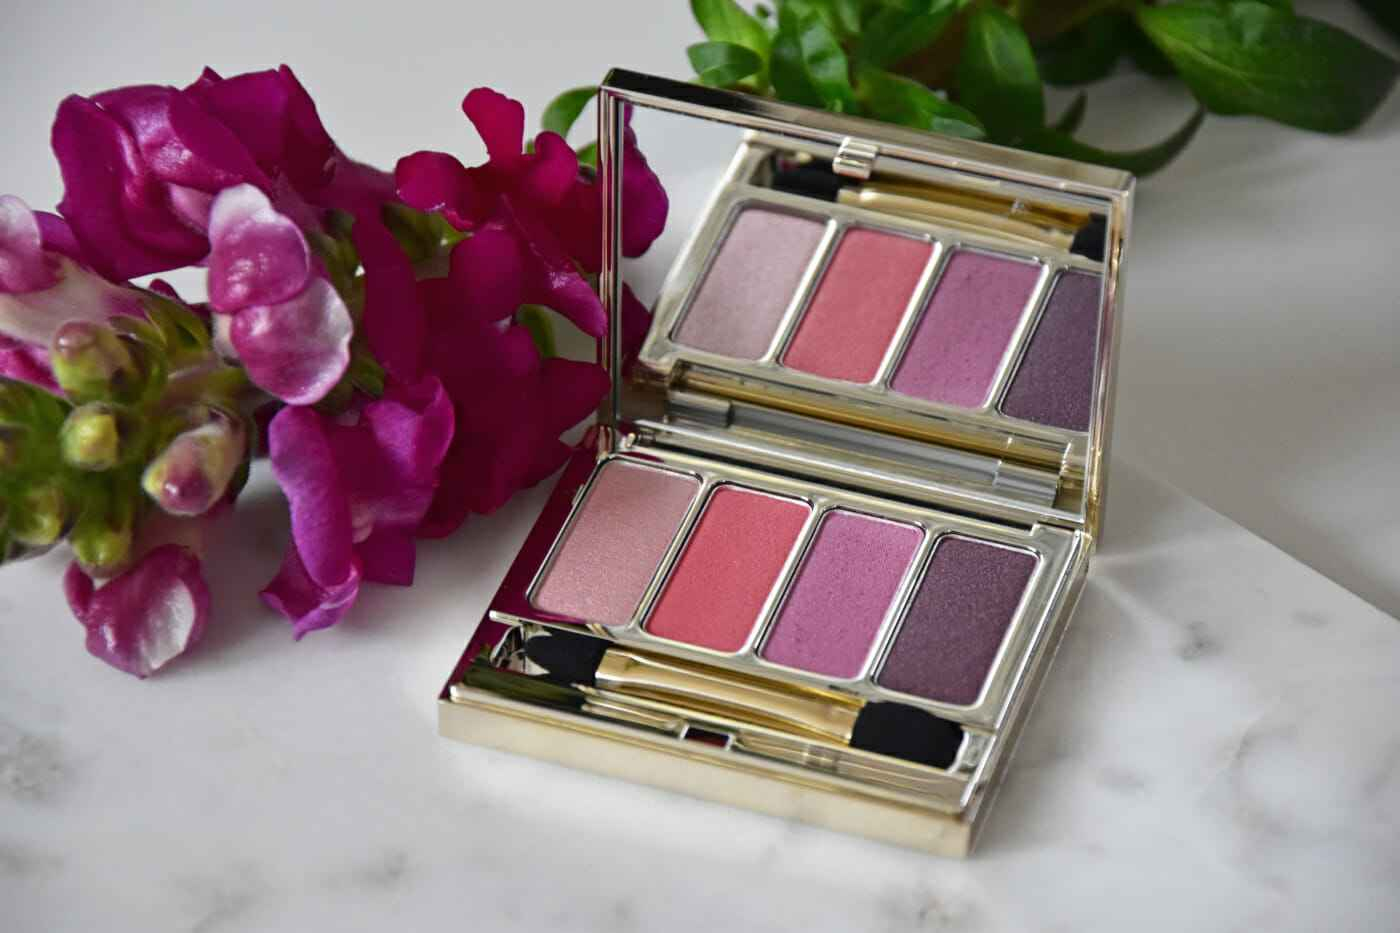 clarins palette 4 couleurs lovely rose